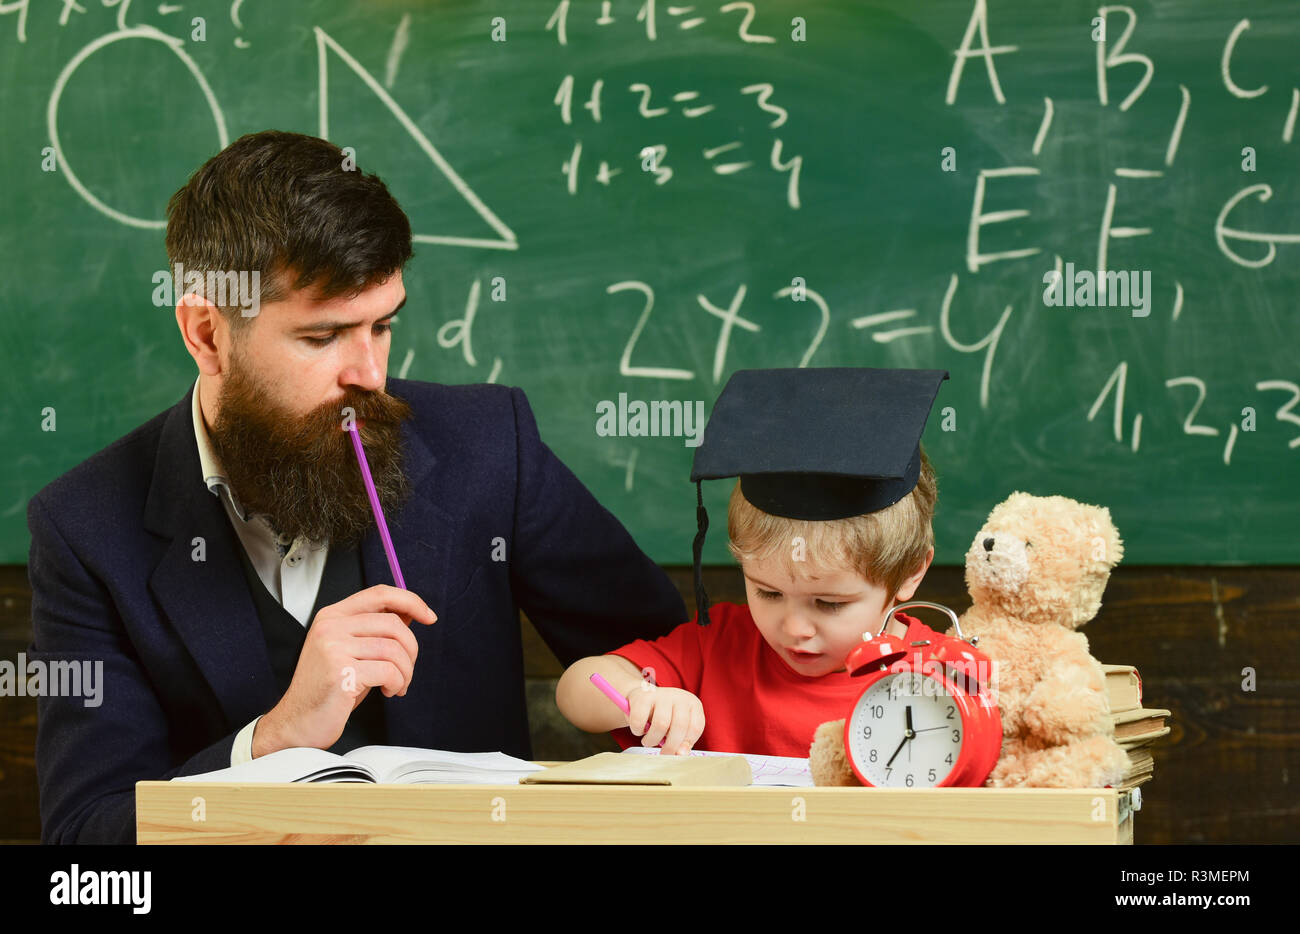 Father checking hometask, helps to boy, son. Teacher in formal wear and pupil in mortarboard in classroom, chalkboard on background. Hometask concept. - Stock Image